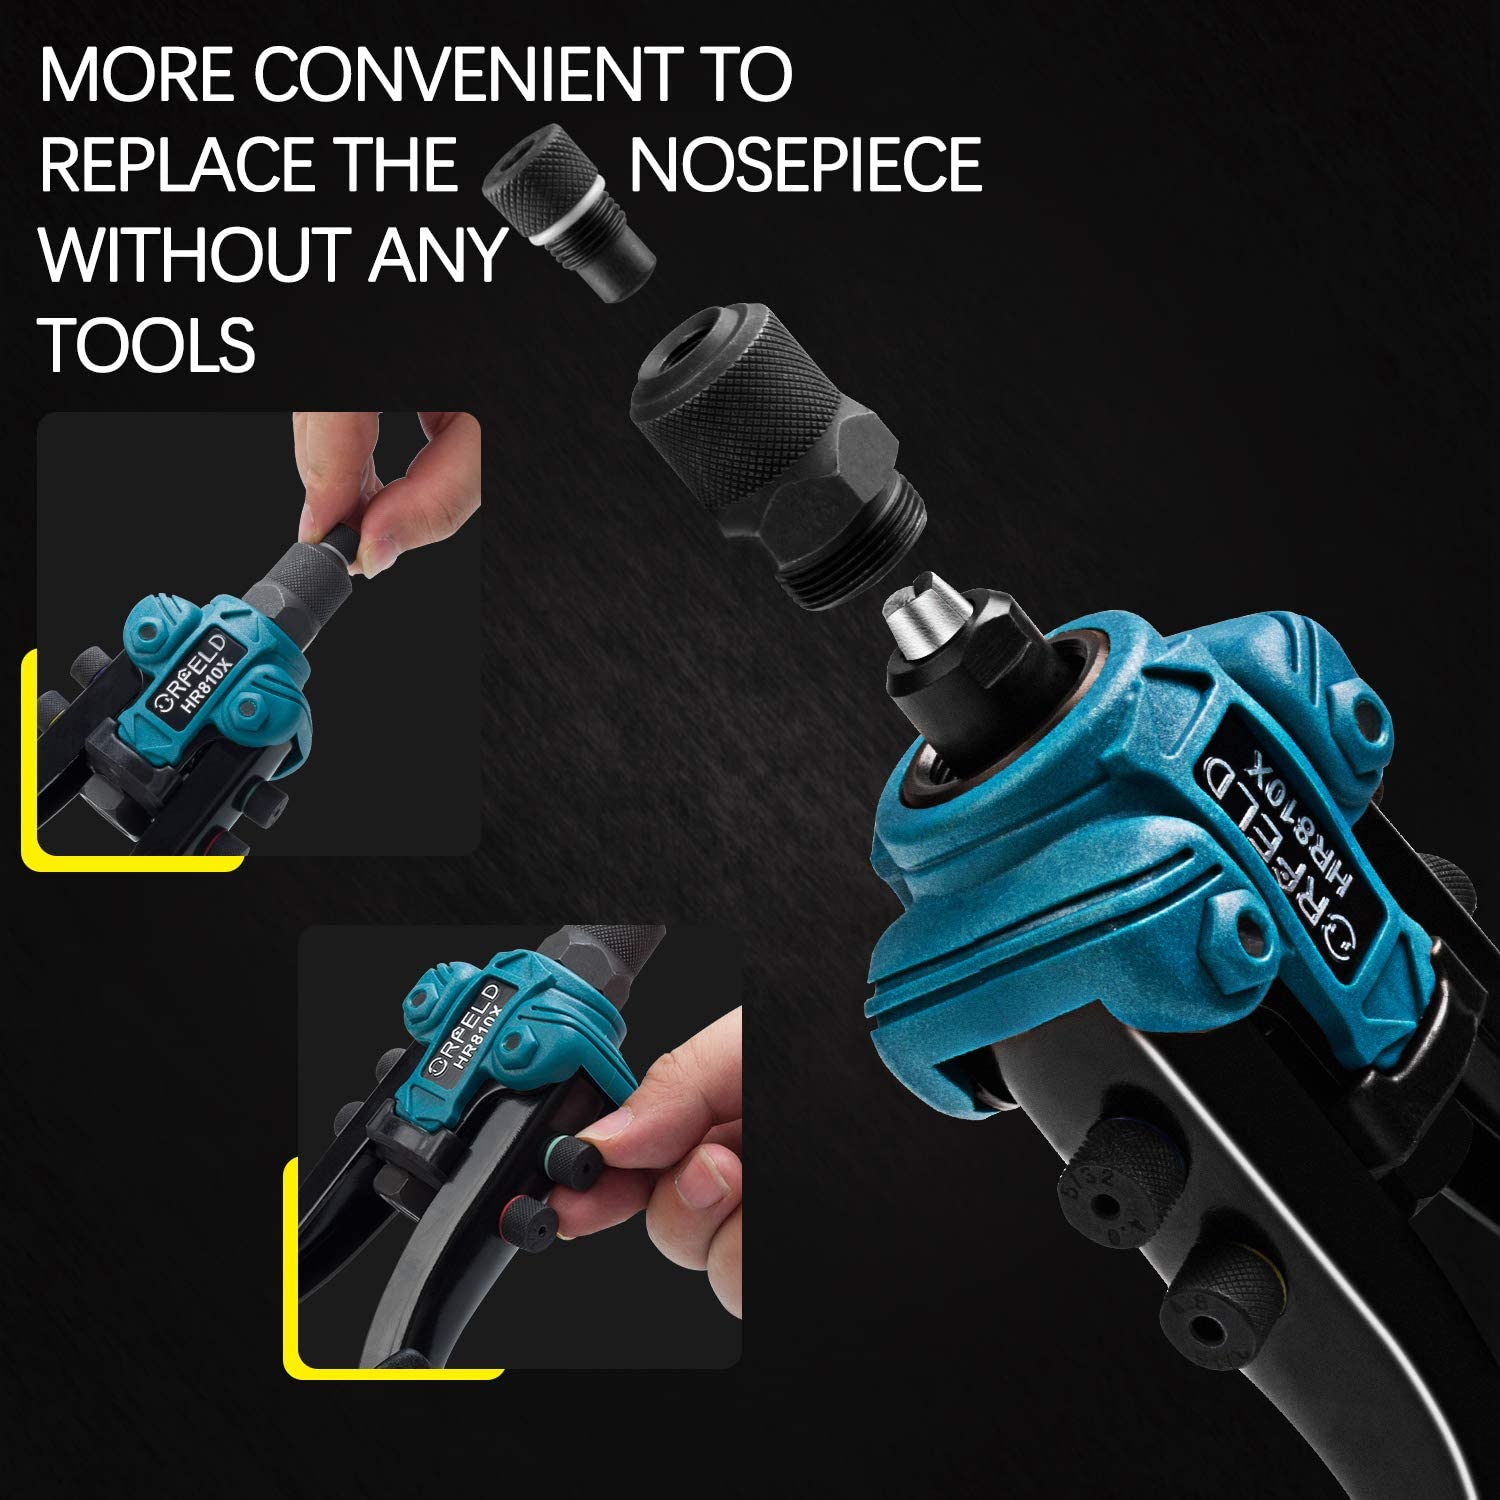 5 in 1 Hand Riveter. 50pcs Rivets 11inch Heavy Duty Rivet Tool with 5 Replaceable Nosepieces ORFELD Hand Rivet Gun